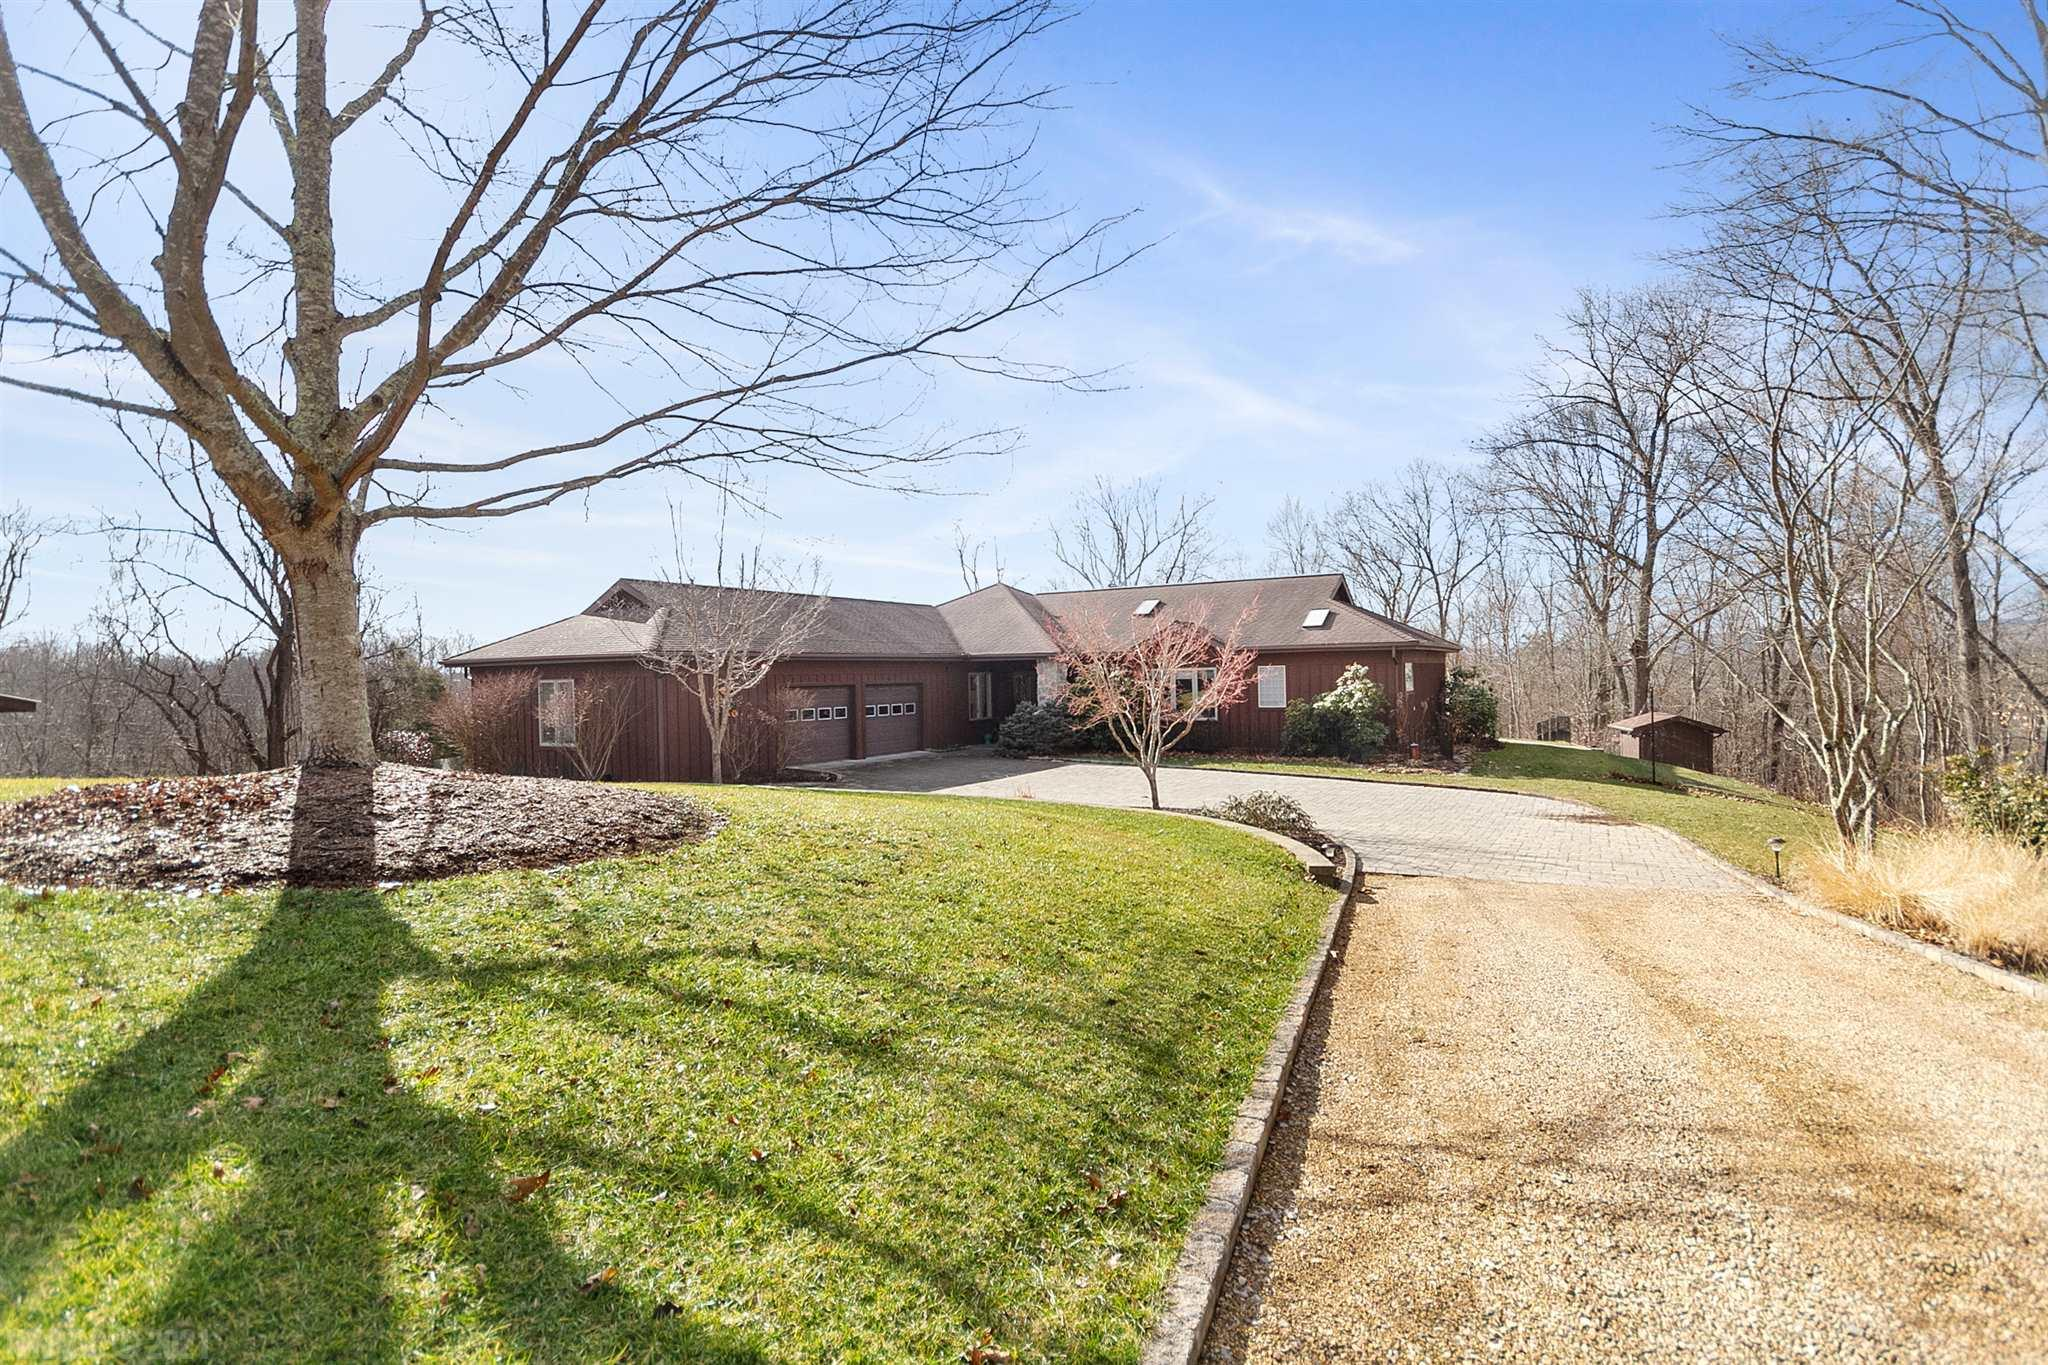 "This custom-built home is a rarity –impressive post and beam interior, exceptionally well-maintained, updated, with both attractive and useful features, one-floor living, over six acres in secluded yet easily accessed Blacksburg area neighborhood.  Read the list in ""documents"" to discover even more details.  You can even bring your horses!  Have you ever wanted a sauna?  That's here, too!  Interior features too many to list. Great room with vaulted ceiling is open and airy, with stone fireplace.  Vaulted ceiling master, opening to patio, has custom closet and luxury bath complete with heated floor and towel racks.  The garage includes an insulated shop and storage room.   Outside, the brick patio features a Holland grill and Bose speakers; a custom paver driveway; a pole-barn style garden shed and the stand-alone sauna building, both aesthetically coordinated with the home. Room dimensions only approximate, buyer to verify."